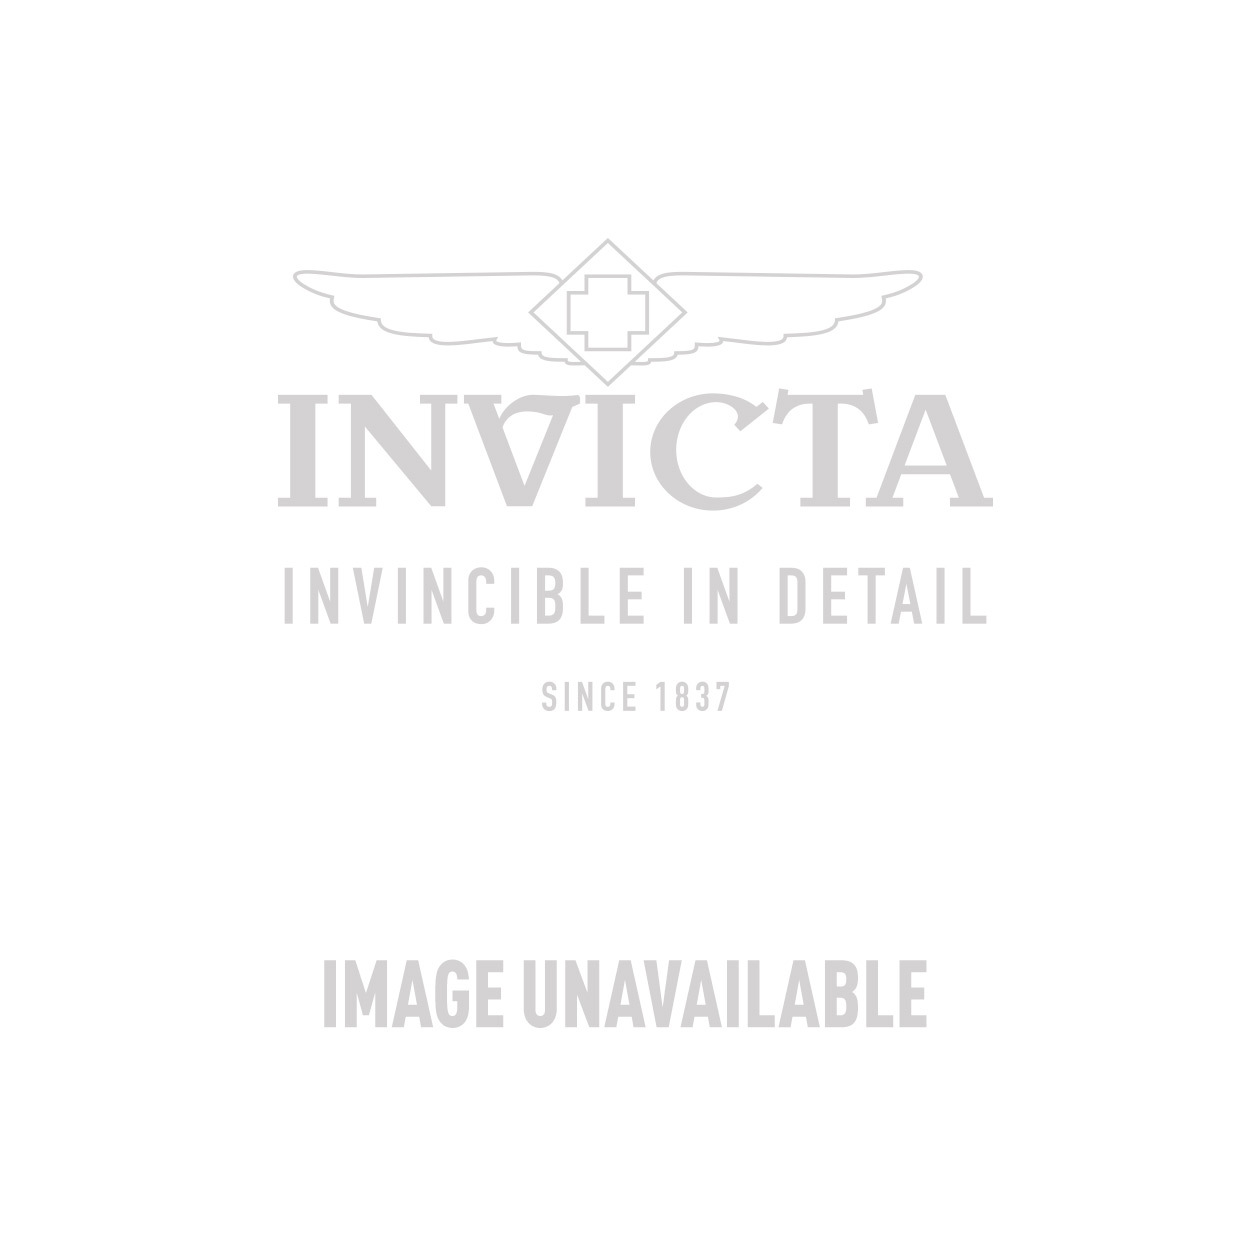 Invicta 43cm Women's Necklaces in Rose Gold - Model J0276